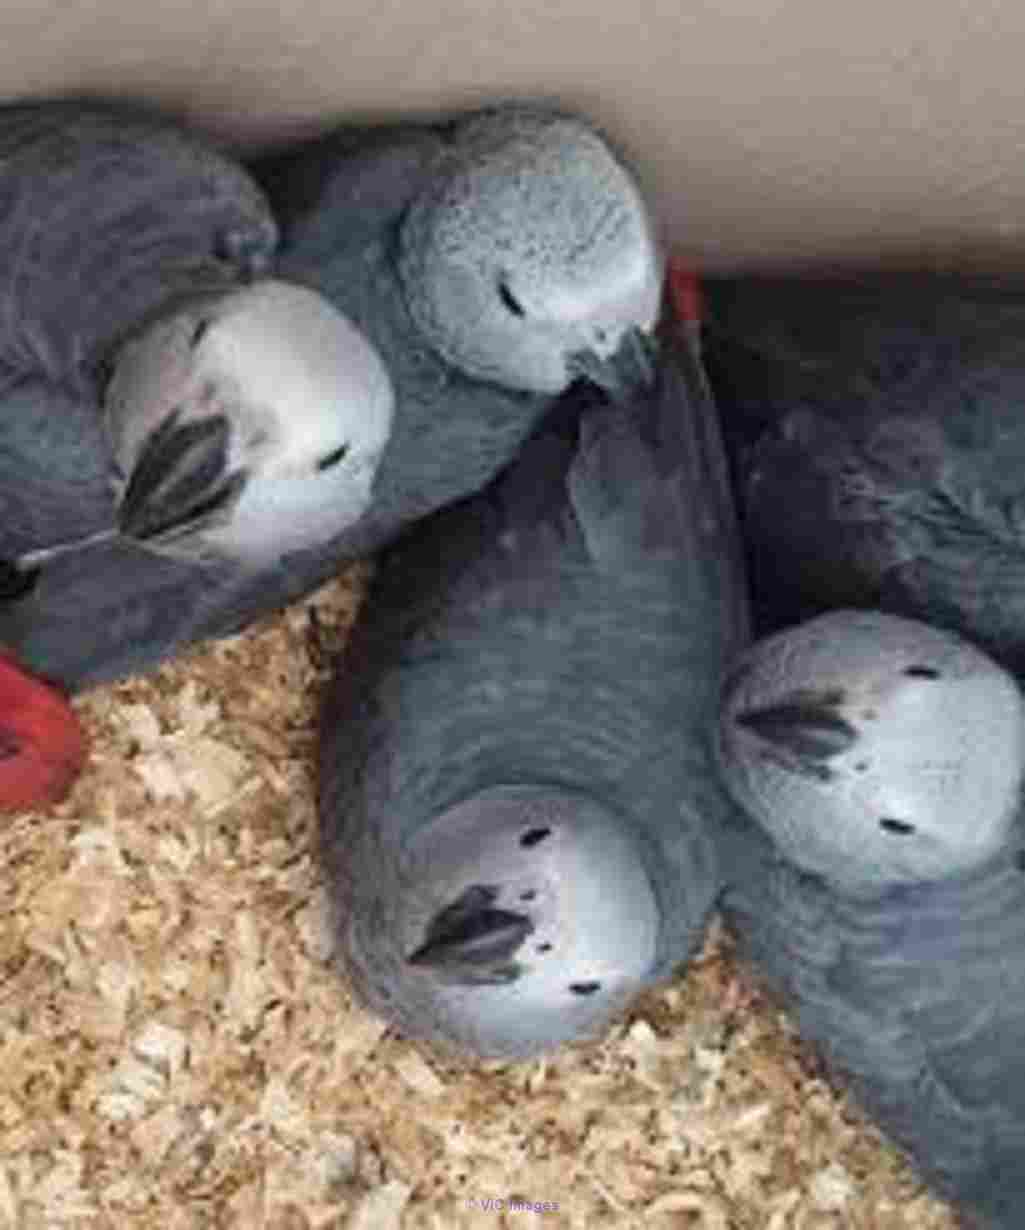 AKC registered African grey parrots Hamilton, Ontario, Canada Classifieds